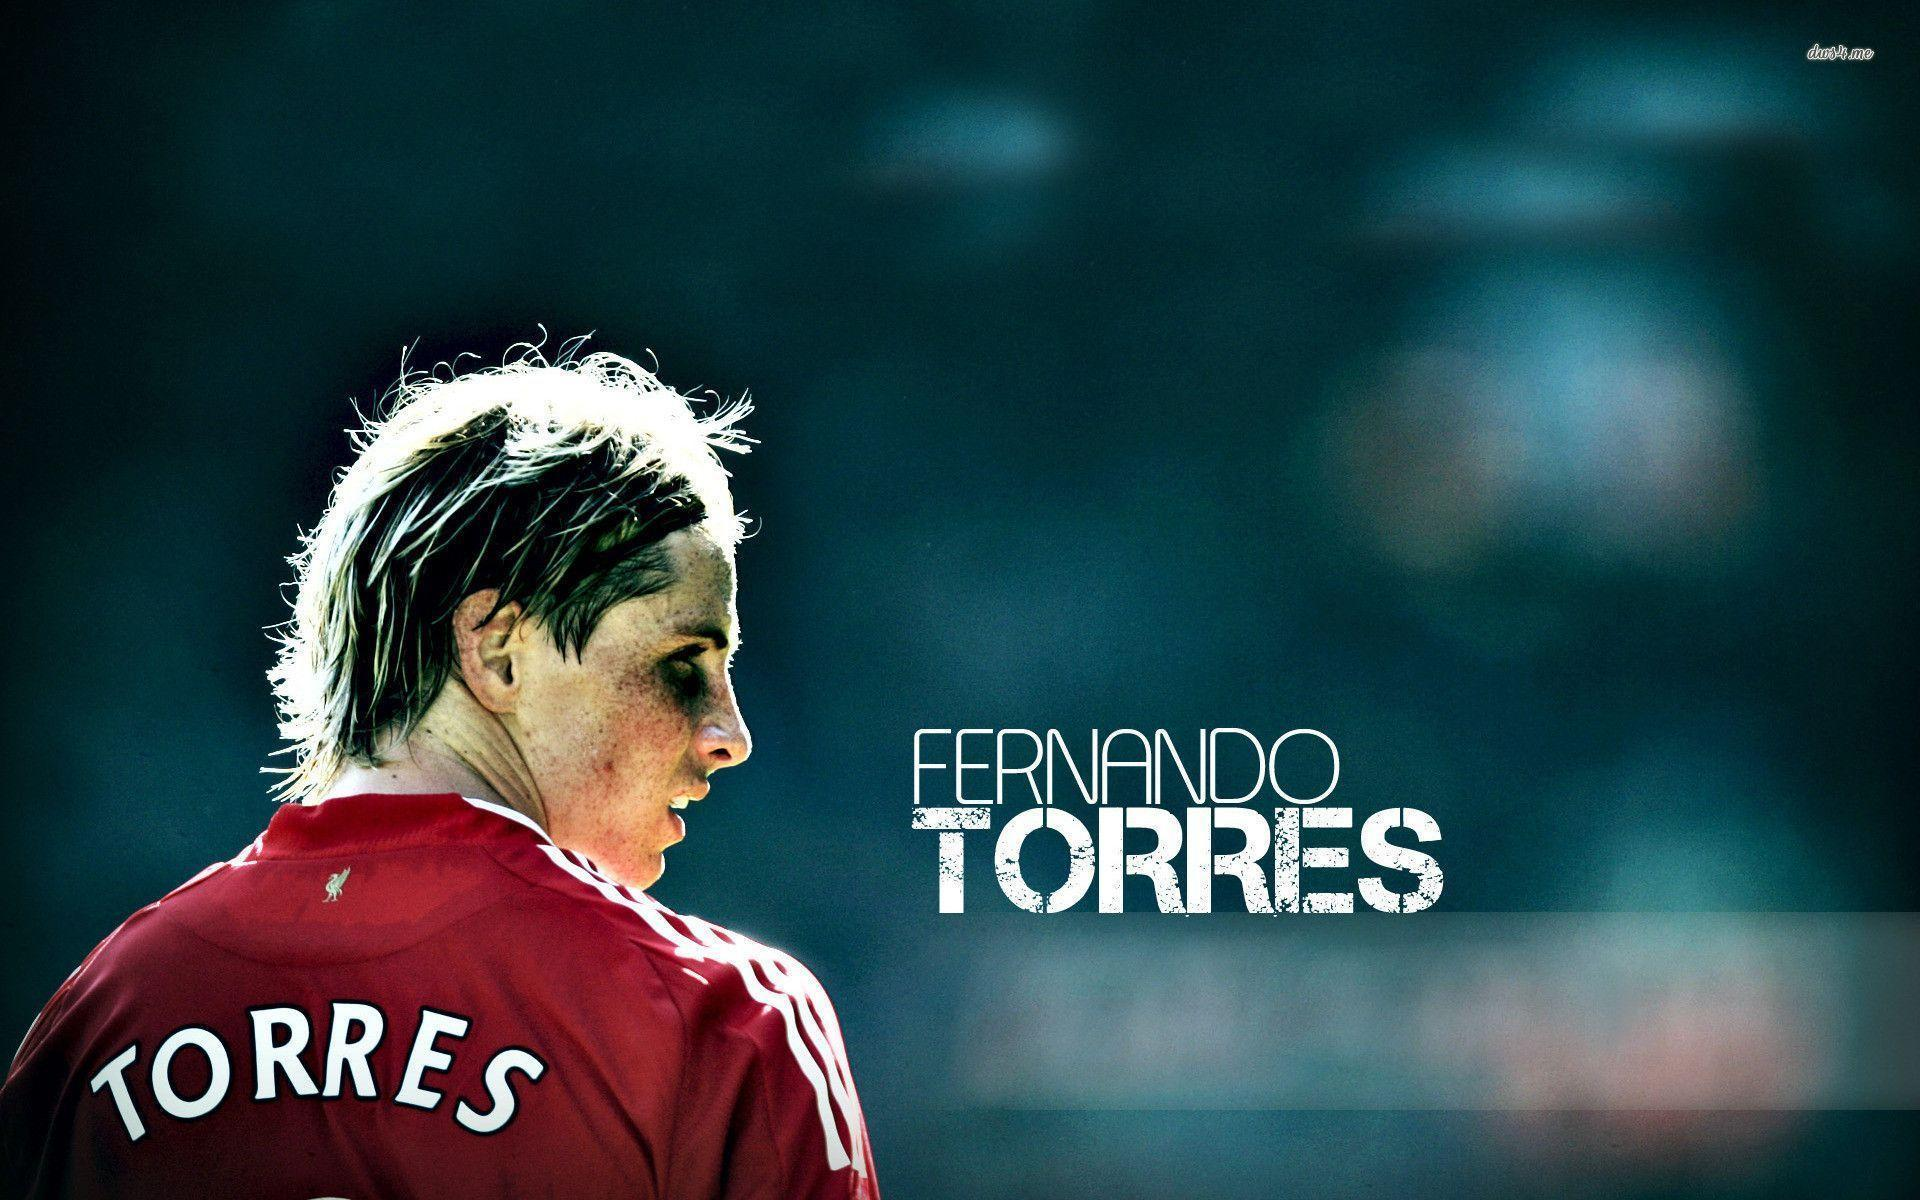 Fernando Torres Wallpapers 1920x1200